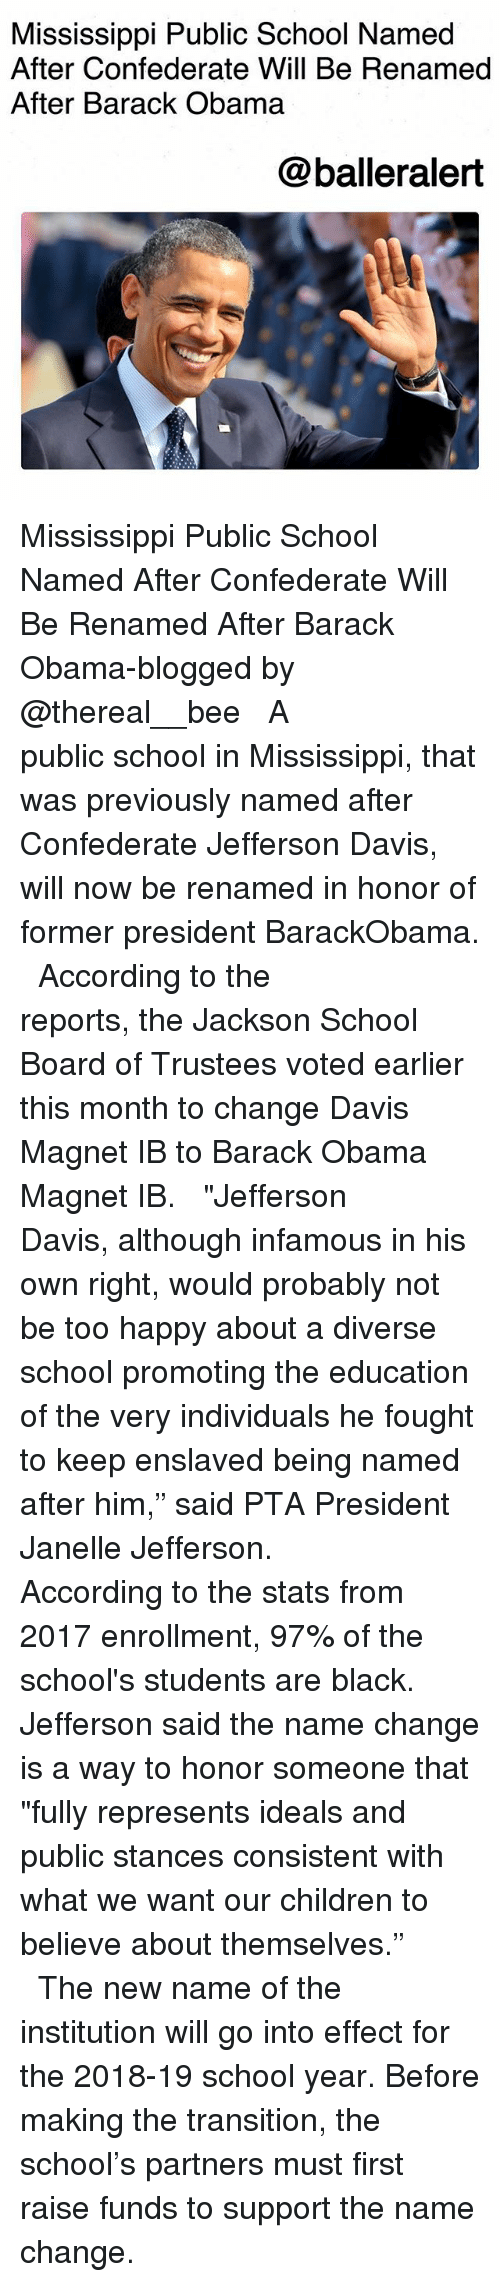 "Children, Memes, and Obama: Mississippi Public School Named  After Confederate Will Be Renamed  After Barack Obama  @balleralert Mississippi Public School Named After Confederate Will Be Renamed After Barack Obama-blogged by @thereal__bee ⠀⠀⠀⠀⠀⠀⠀⠀⠀ ⠀⠀ A public school in Mississippi, that was previously named after Confederate Jefferson Davis, will now be renamed in honor of former president BarackObama. ⠀⠀⠀⠀⠀⠀⠀⠀⠀ ⠀⠀ According to the reports, the Jackson School Board of Trustees voted earlier this month to change Davis Magnet IB to Barack Obama Magnet IB. ⠀⠀⠀⠀⠀⠀⠀⠀⠀ ⠀⠀ ""Jefferson Davis, although infamous in his own right, would probably not be too happy about a diverse school promoting the education of the very individuals he fought to keep enslaved being named after him,"" said PTA President Janelle Jefferson. ⠀⠀⠀⠀⠀⠀⠀⠀⠀ ⠀⠀ According to the stats from 2017 enrollment, 97% of the school's students are black. Jefferson said the name change is a way to honor someone that ""fully represents ideals and public stances consistent with what we want our children to believe about themselves."" ⠀⠀⠀⠀⠀⠀⠀⠀⠀ ⠀⠀ The new name of the institution will go into effect for the 2018-19 school year. Before making the transition, the school's partners must first raise funds to support the name change."